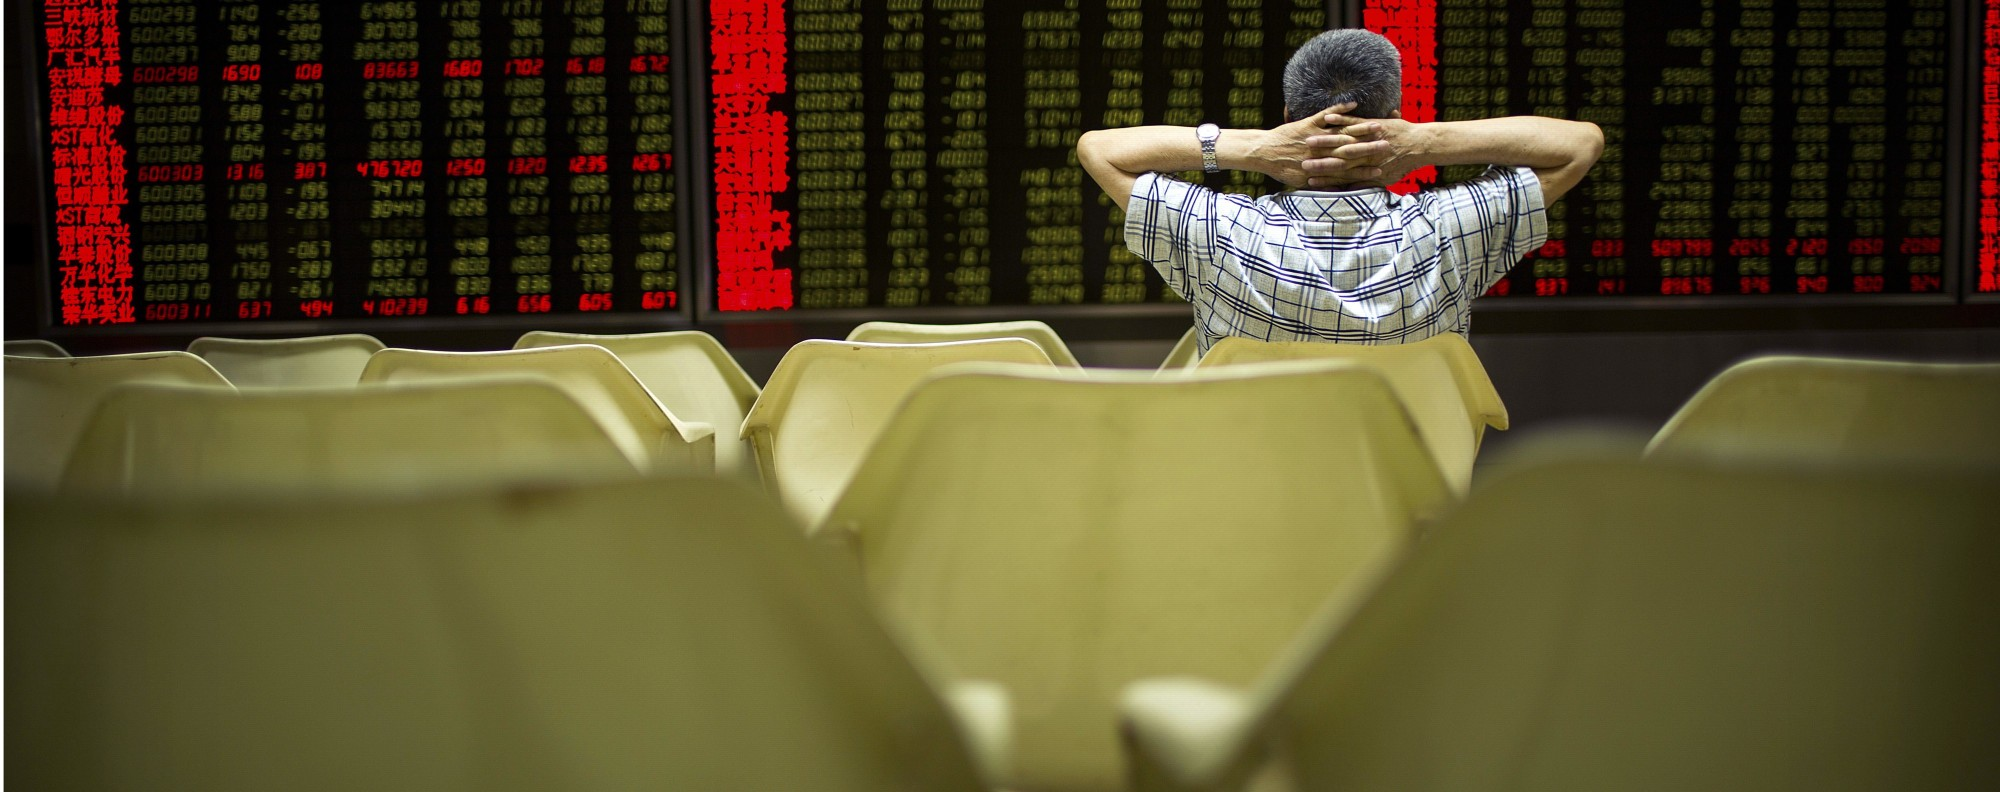 An investor monitors stock prices in Beijing. Photo: AP